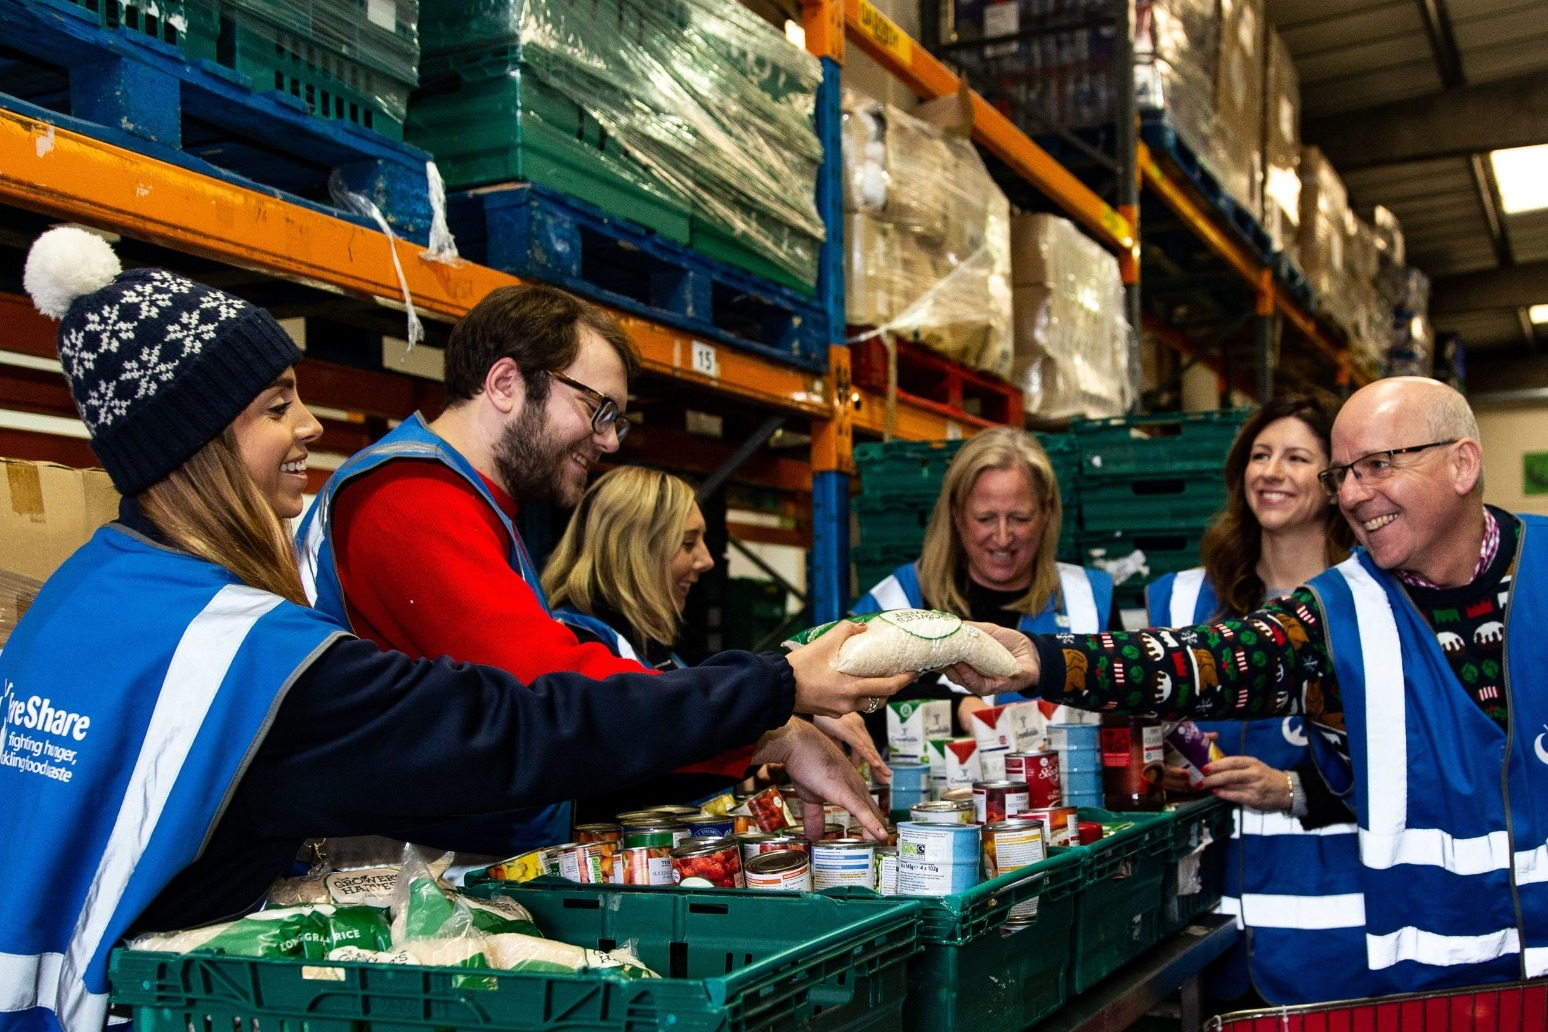 FOOD BANKS BRACED FOR BUSIEST DECEMBER ON RECORD